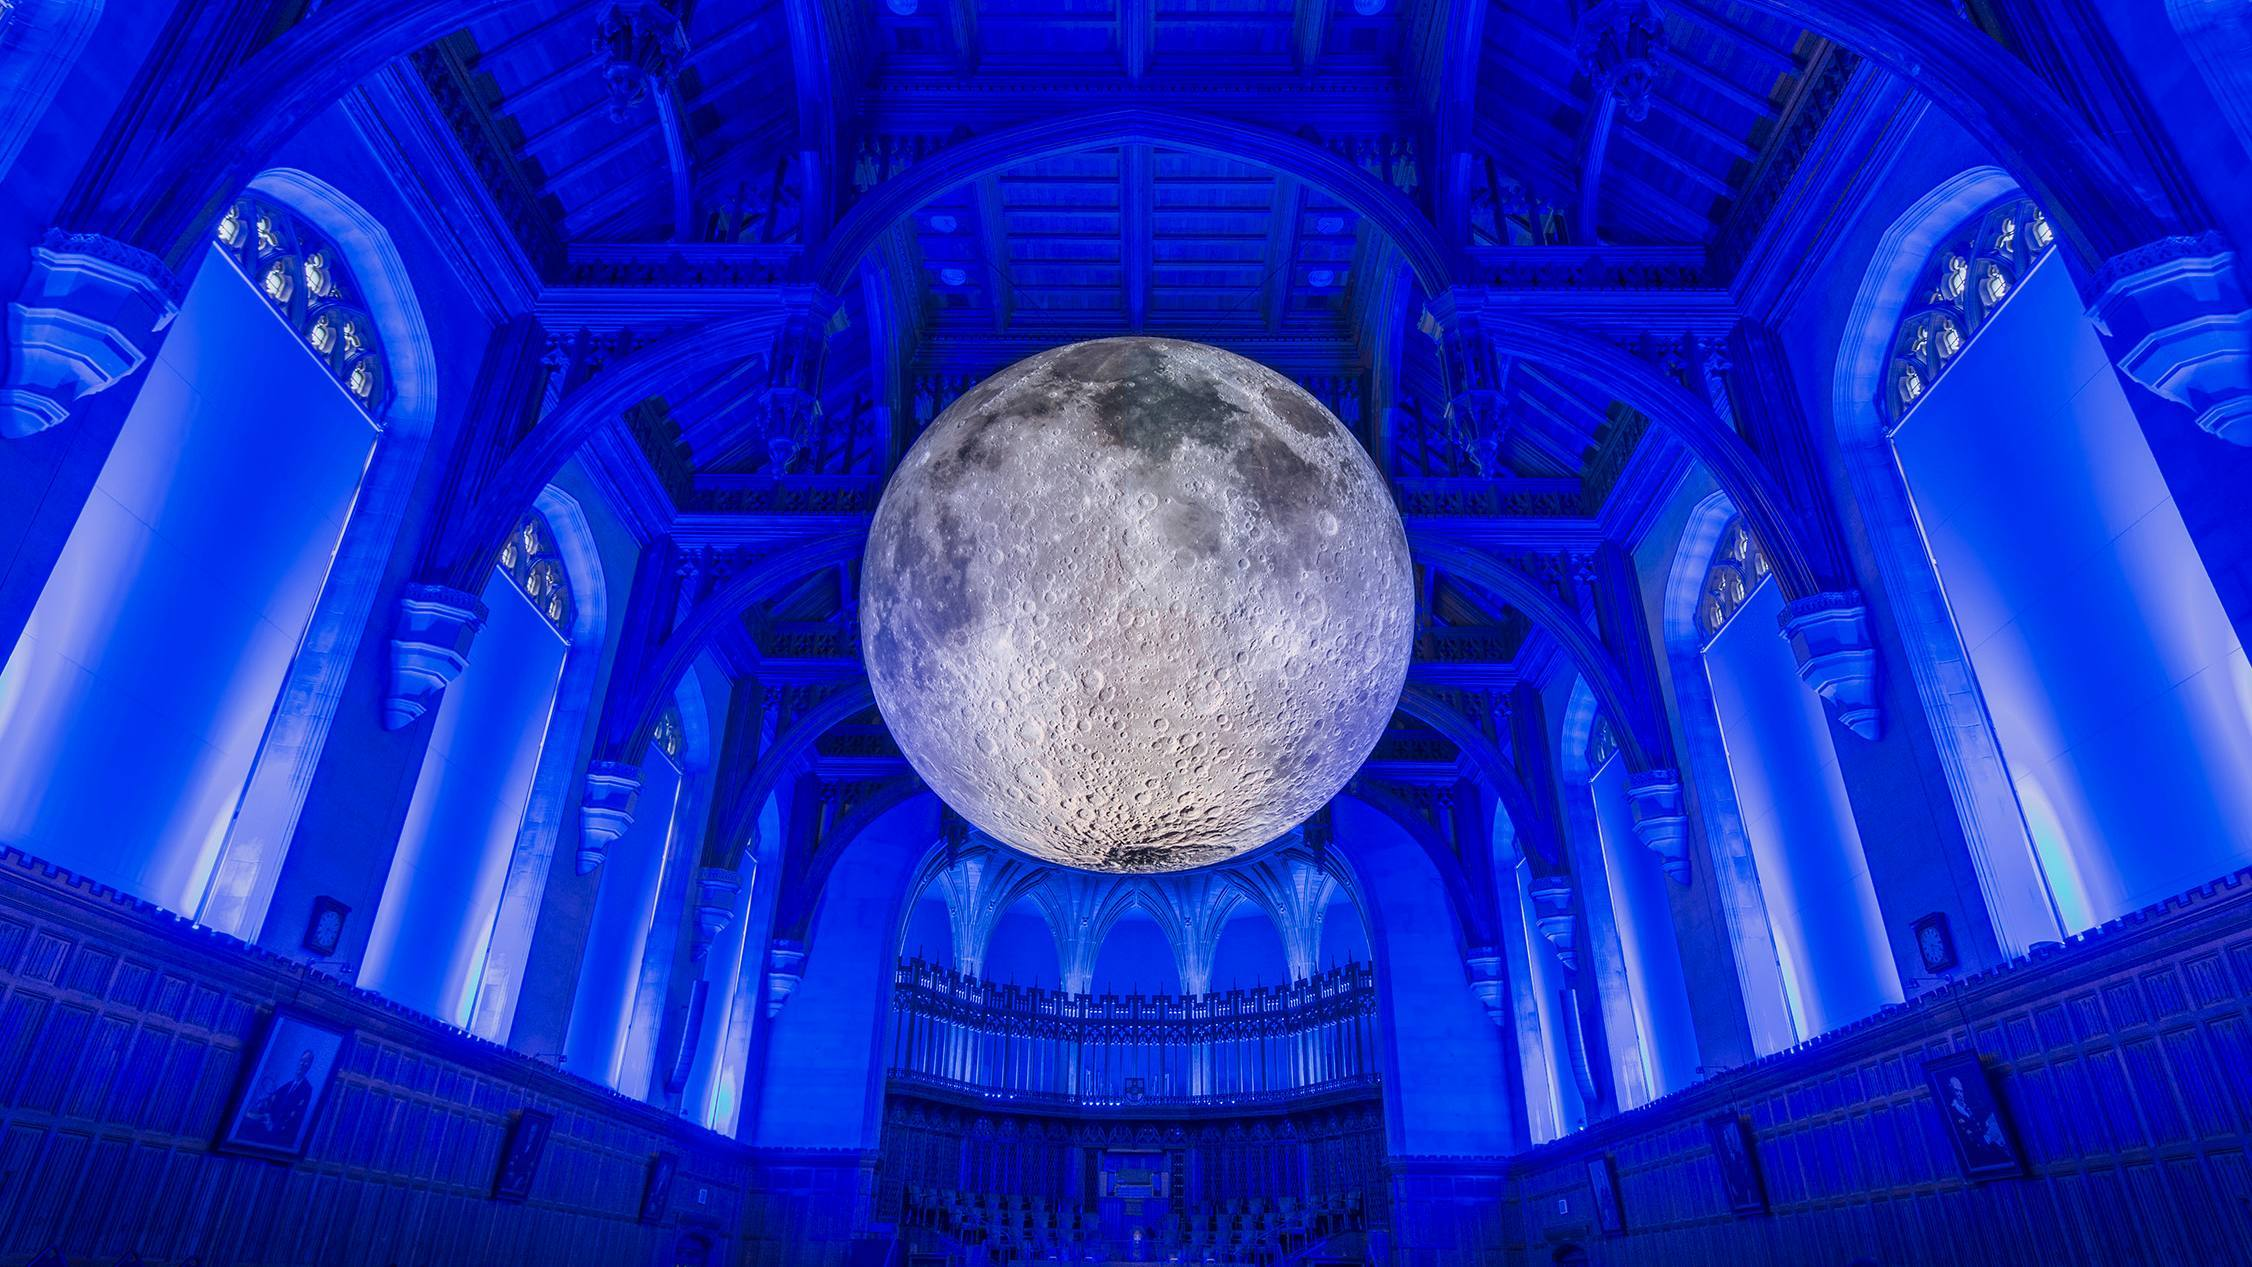 A sculpture of the moon